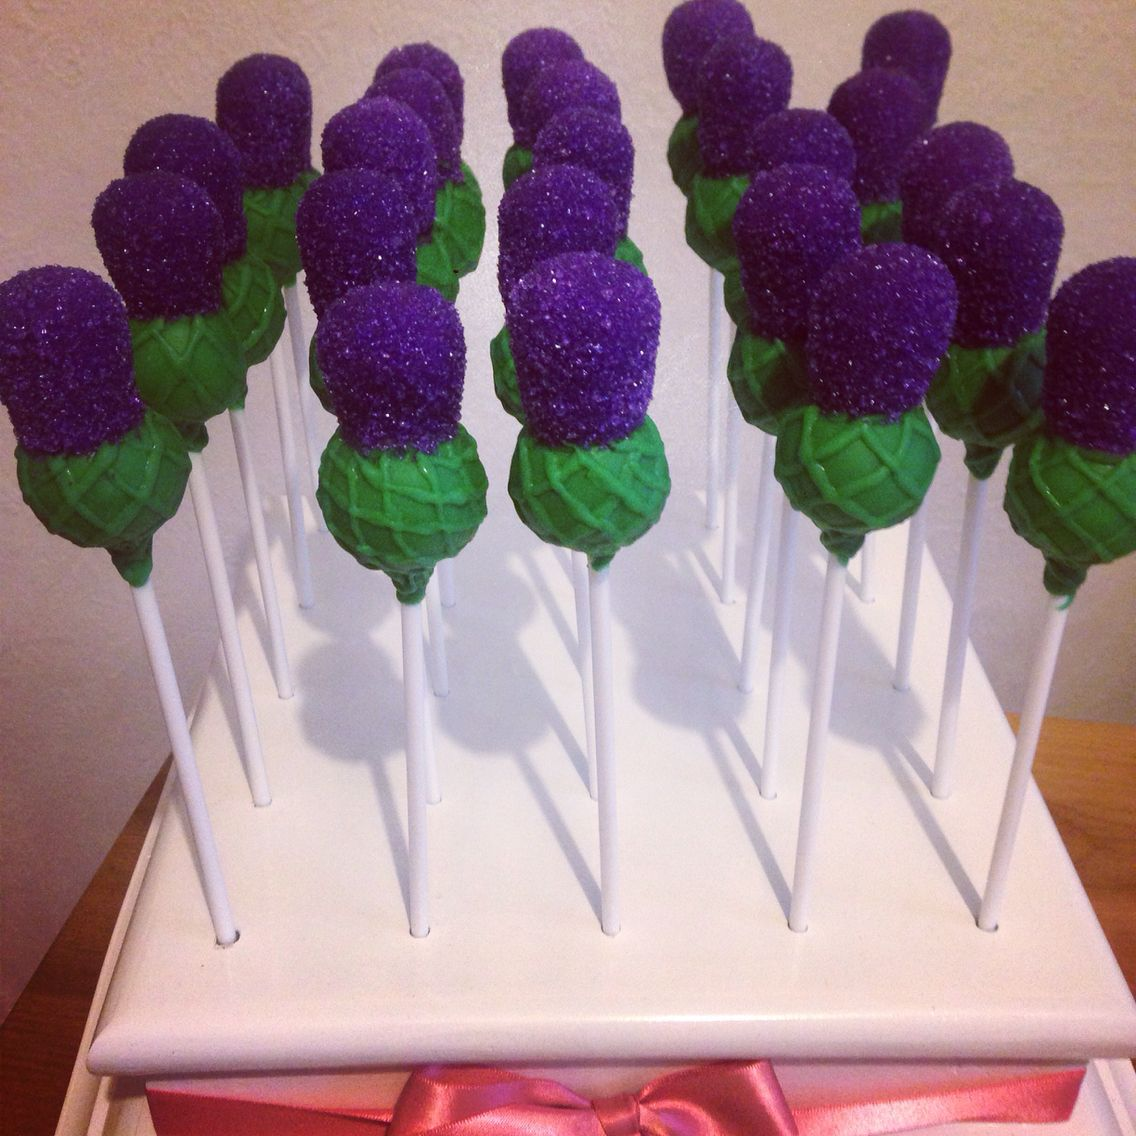 Thistle Cakepops For A Scottish Theme- Great Idea For